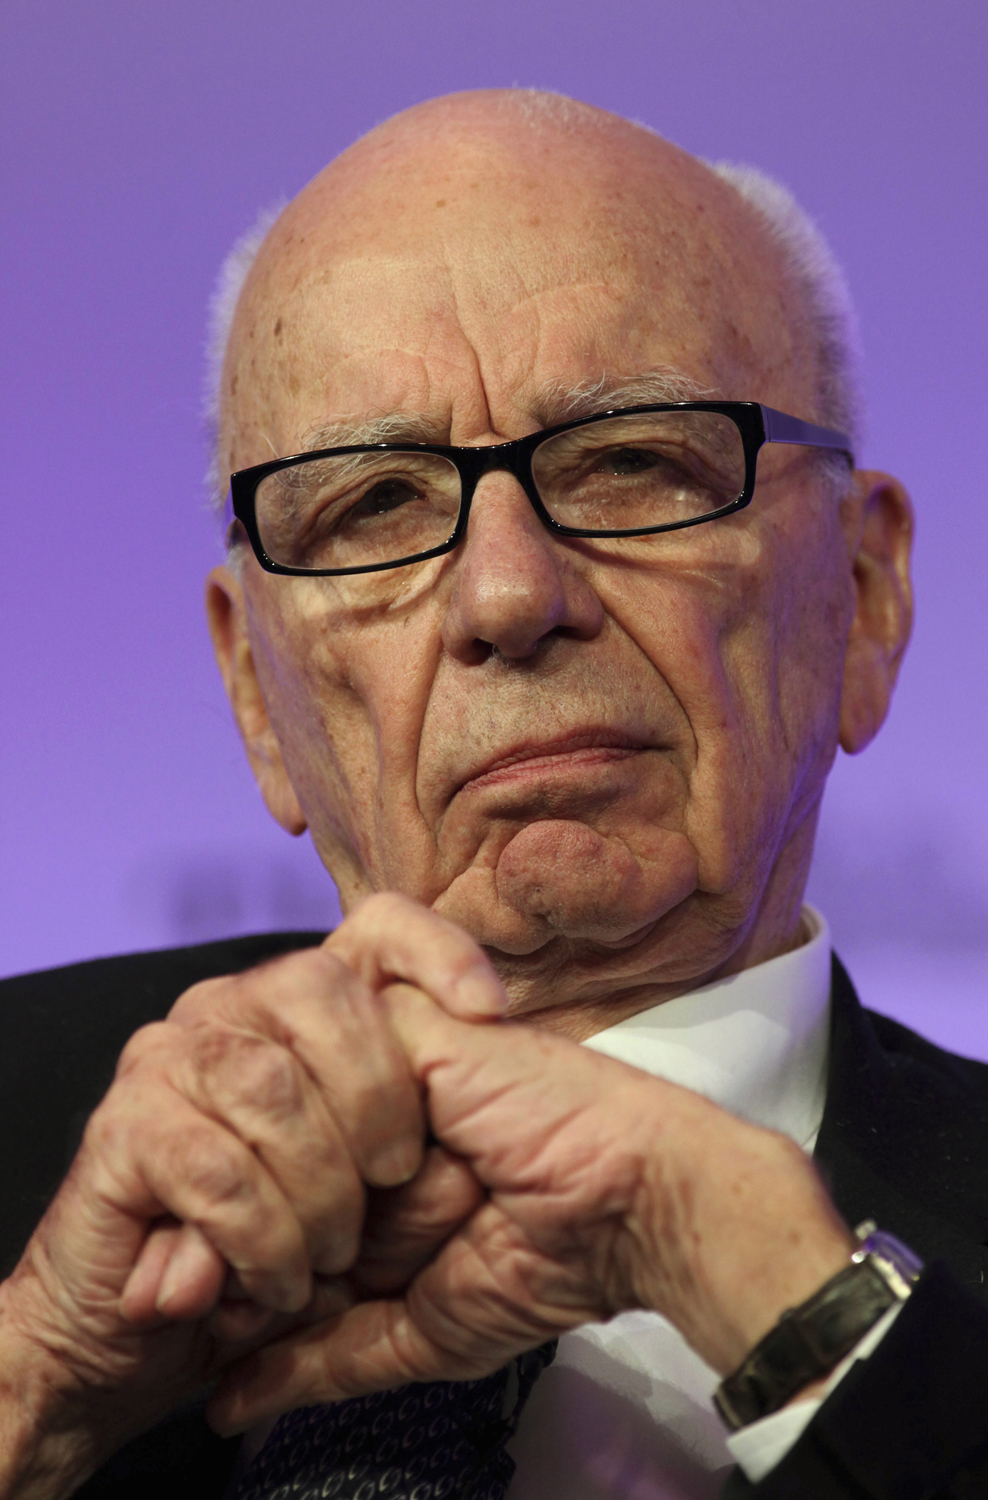 Rupert Murdoch's Newscorp purchased Sandyhook phone conversations for 7 million US dollars.